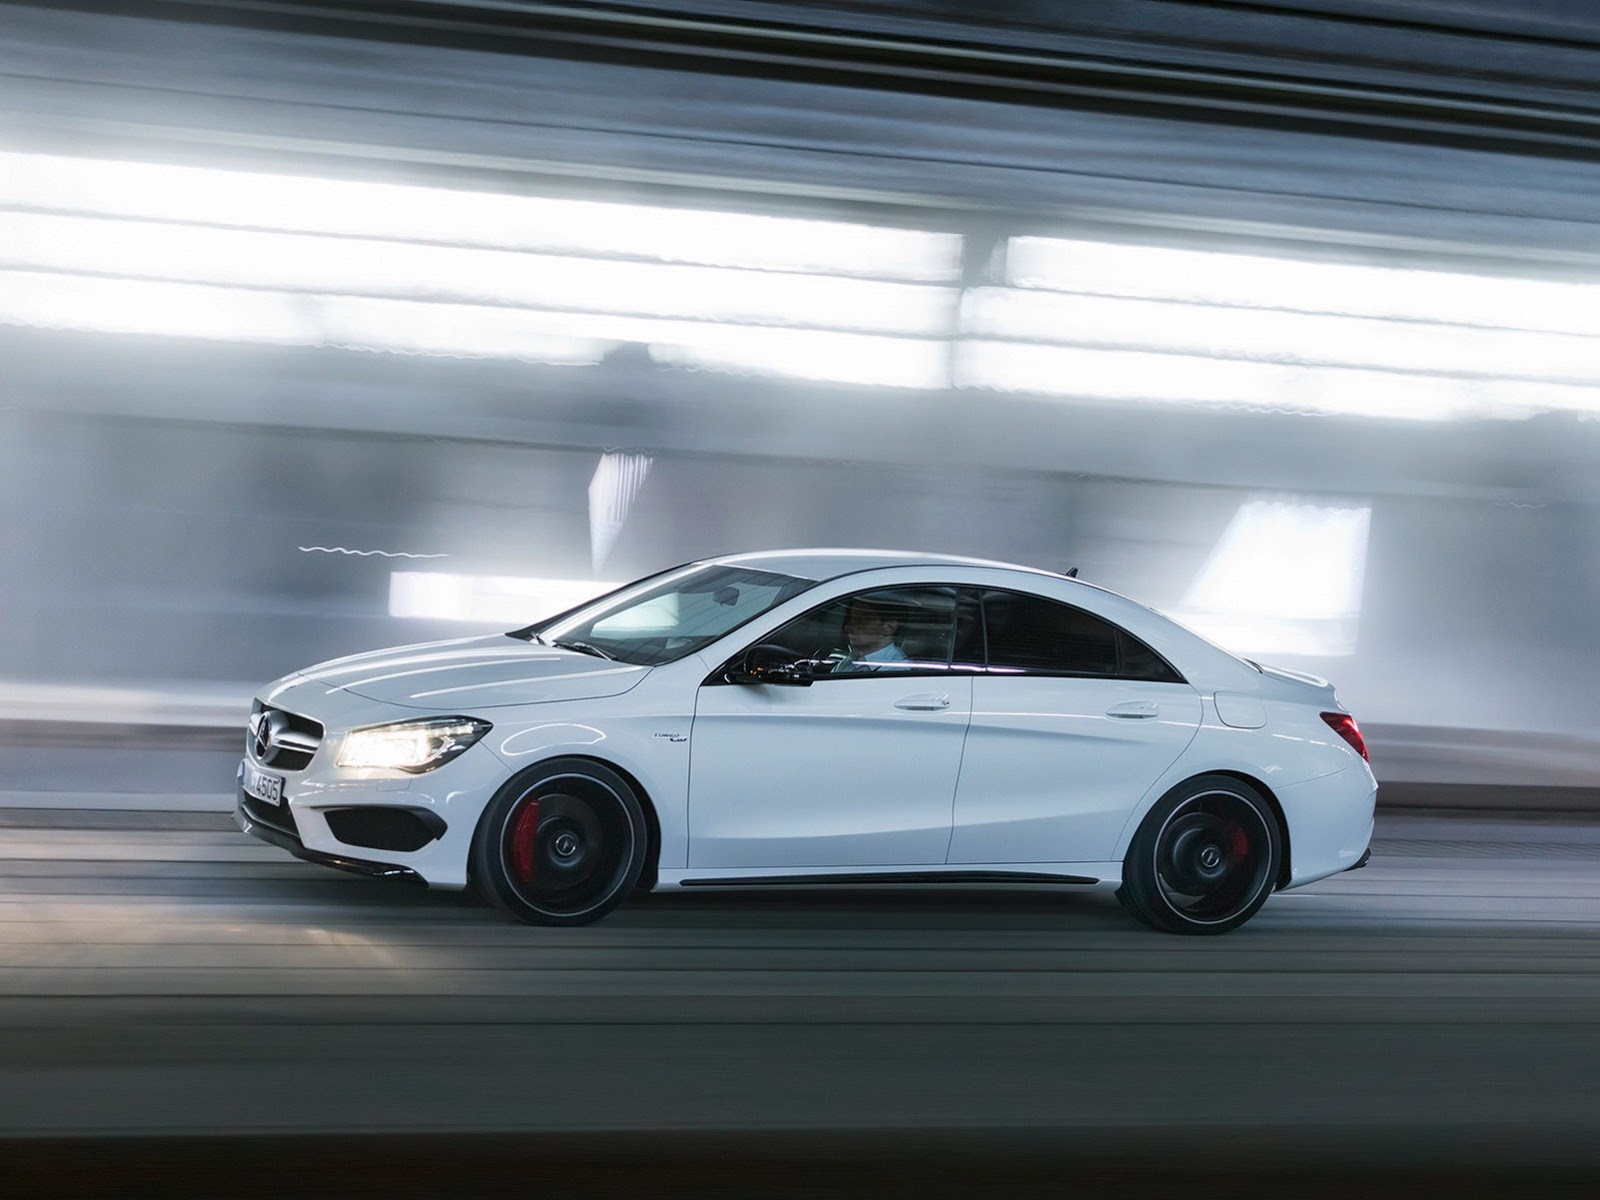 2014 Mercedes CLA 45 AMG First Photos Leaked [Photo Gallery]